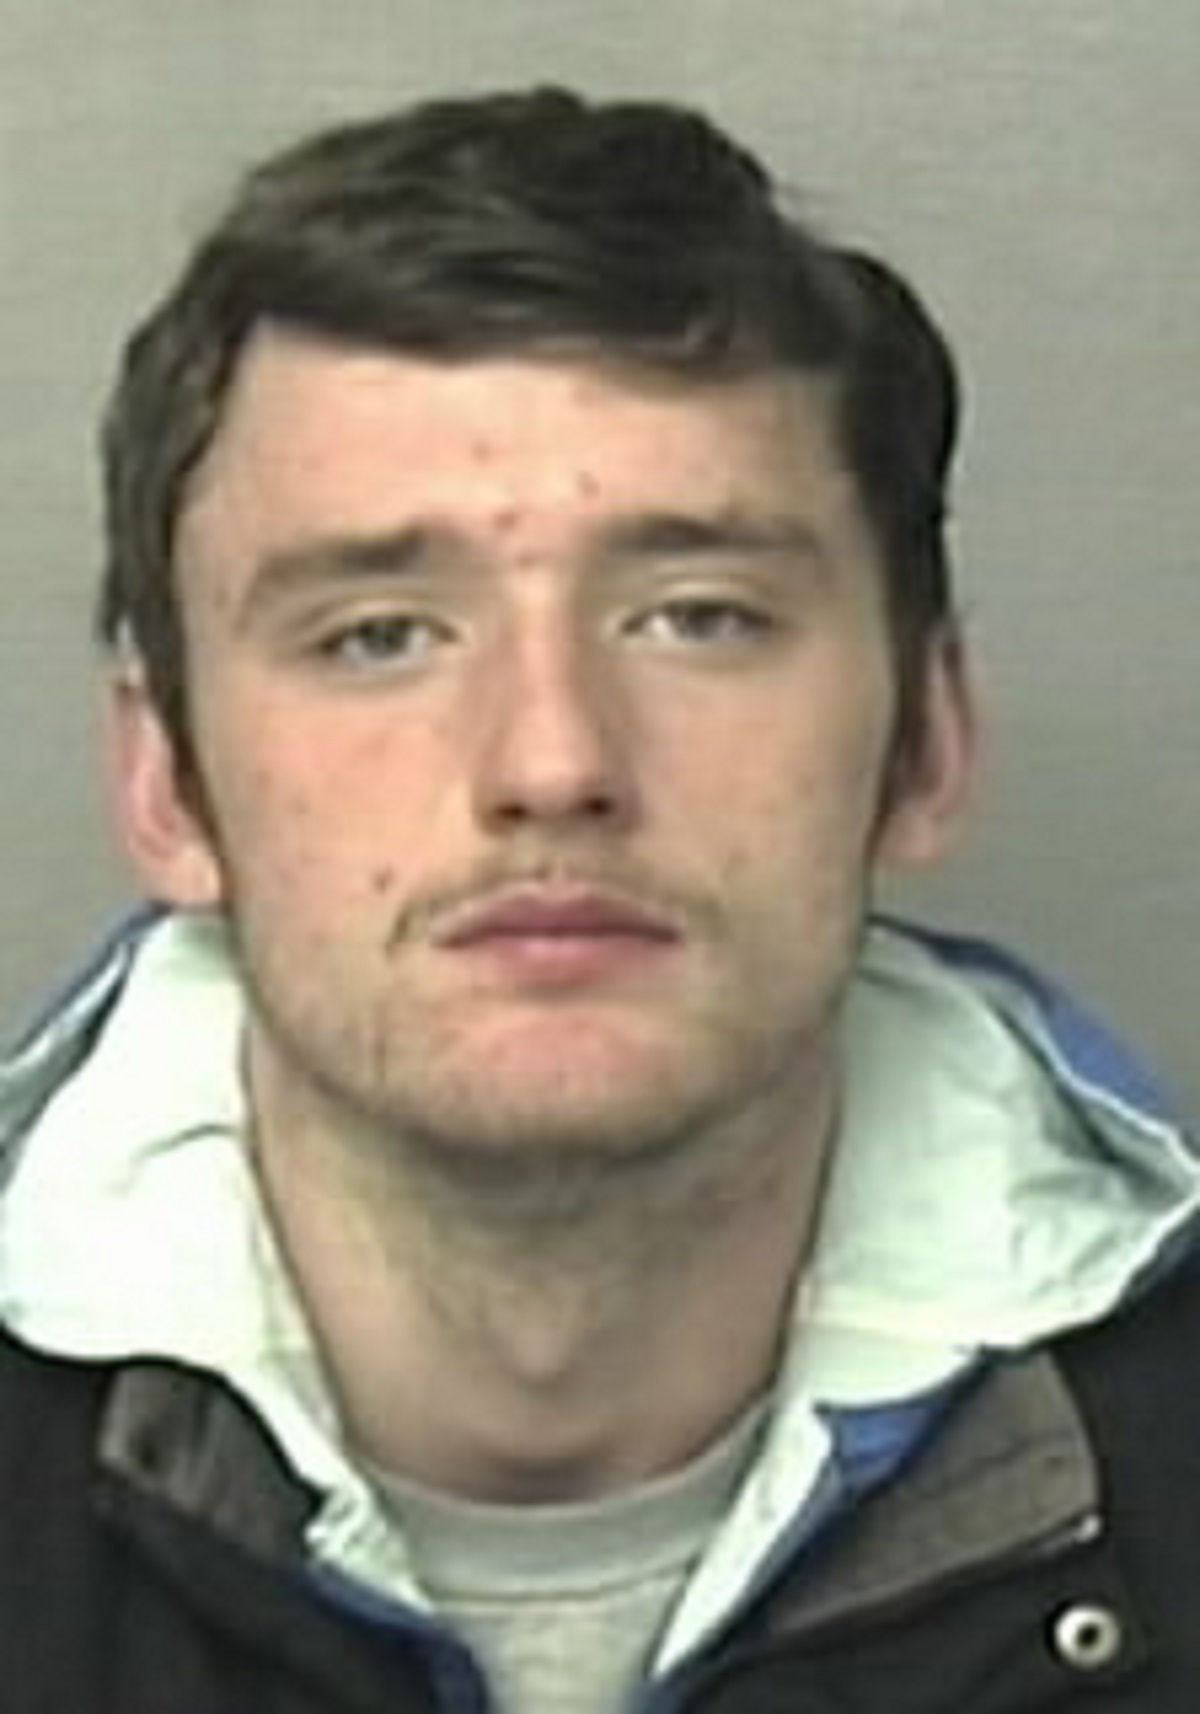 Liam Bowkett, jailed for 13 months